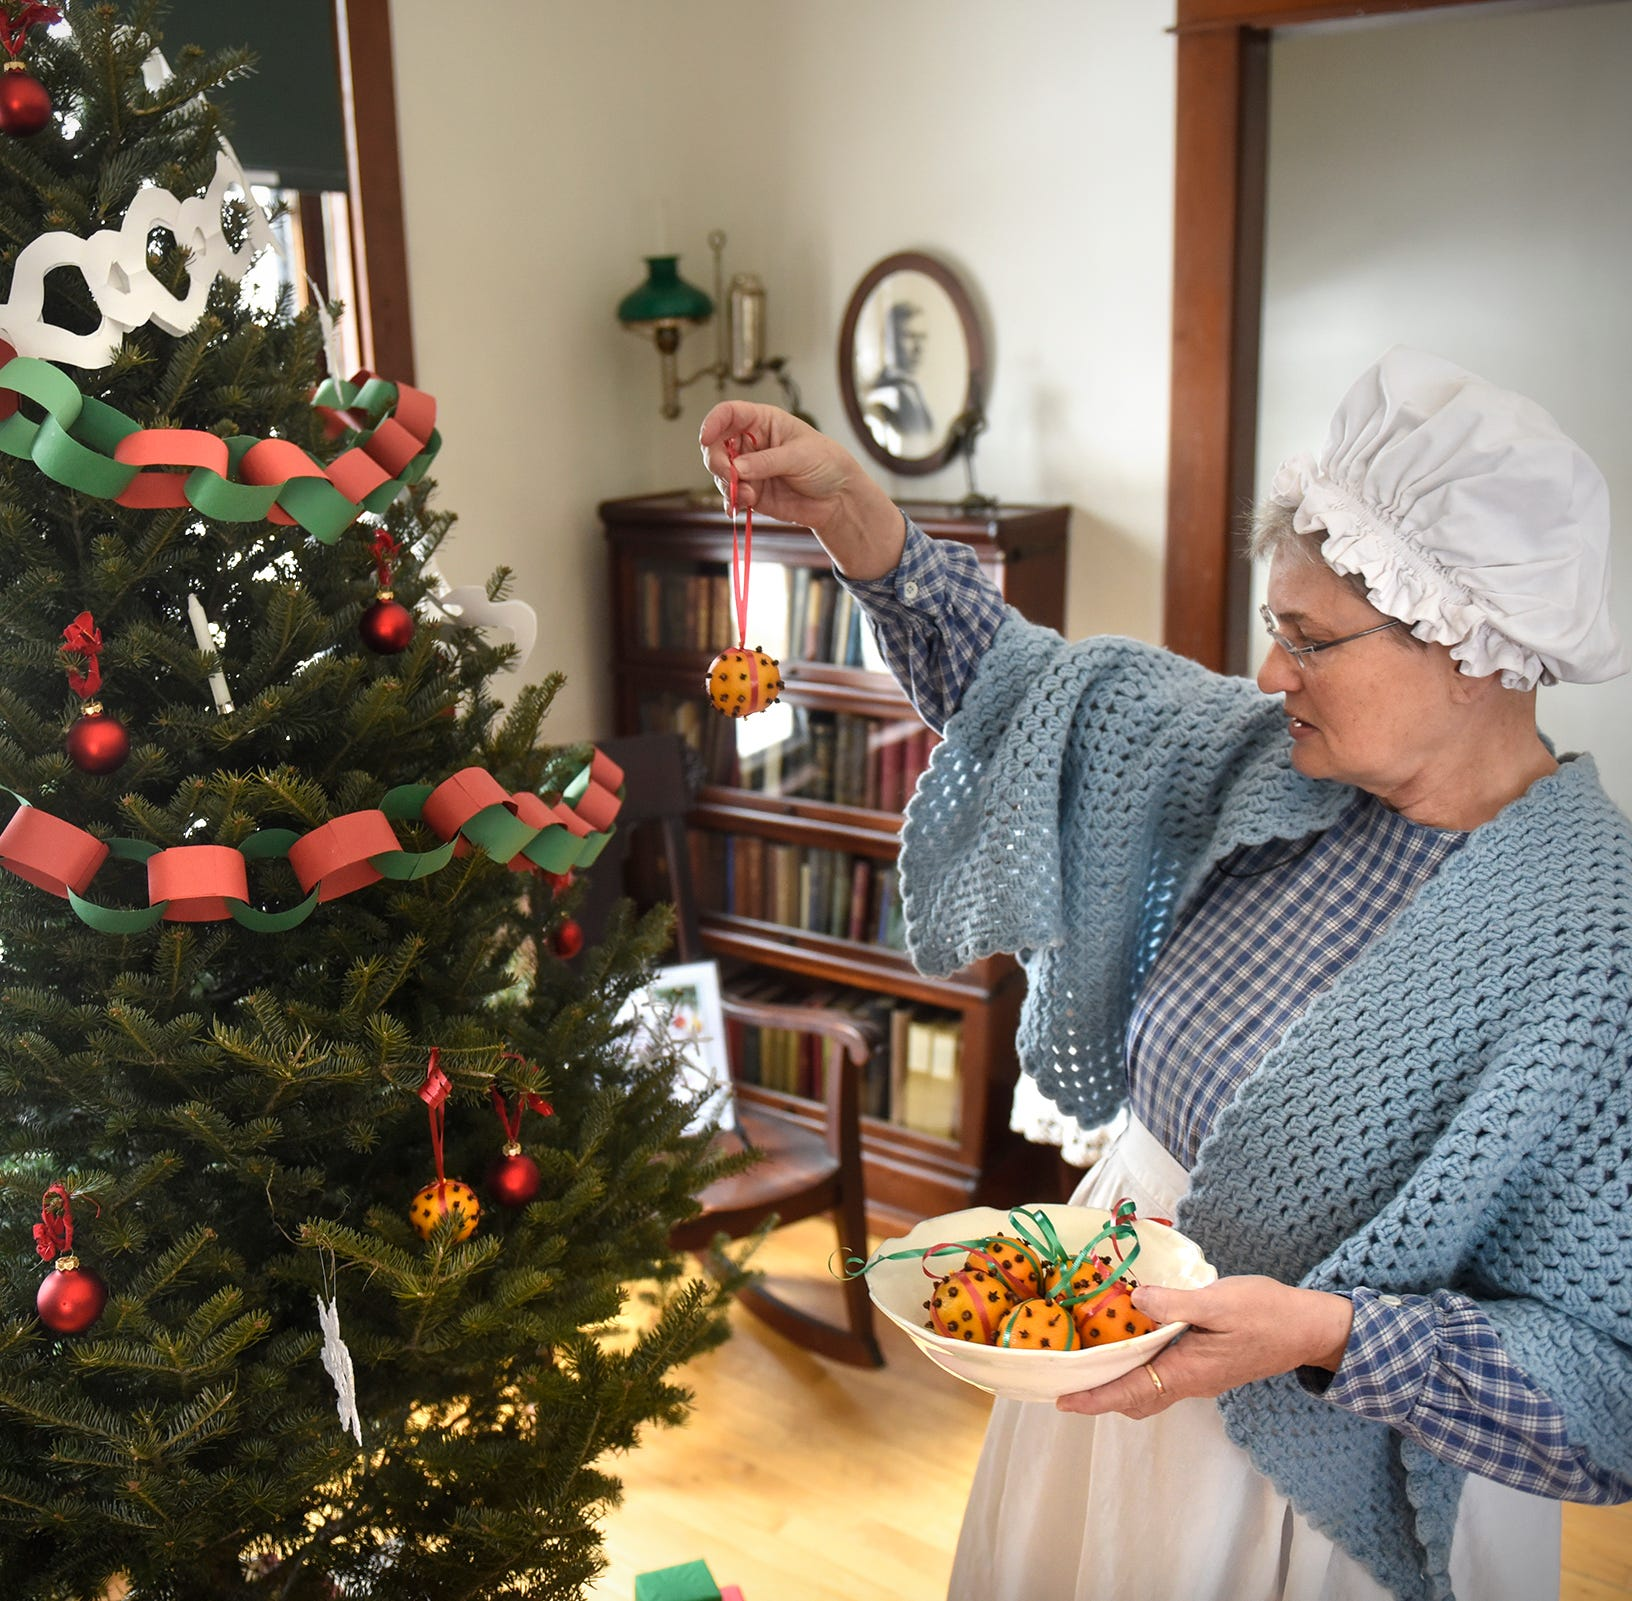 Travel back in time this holiday season during 'A WWI Christmas' at the Lindbergh House